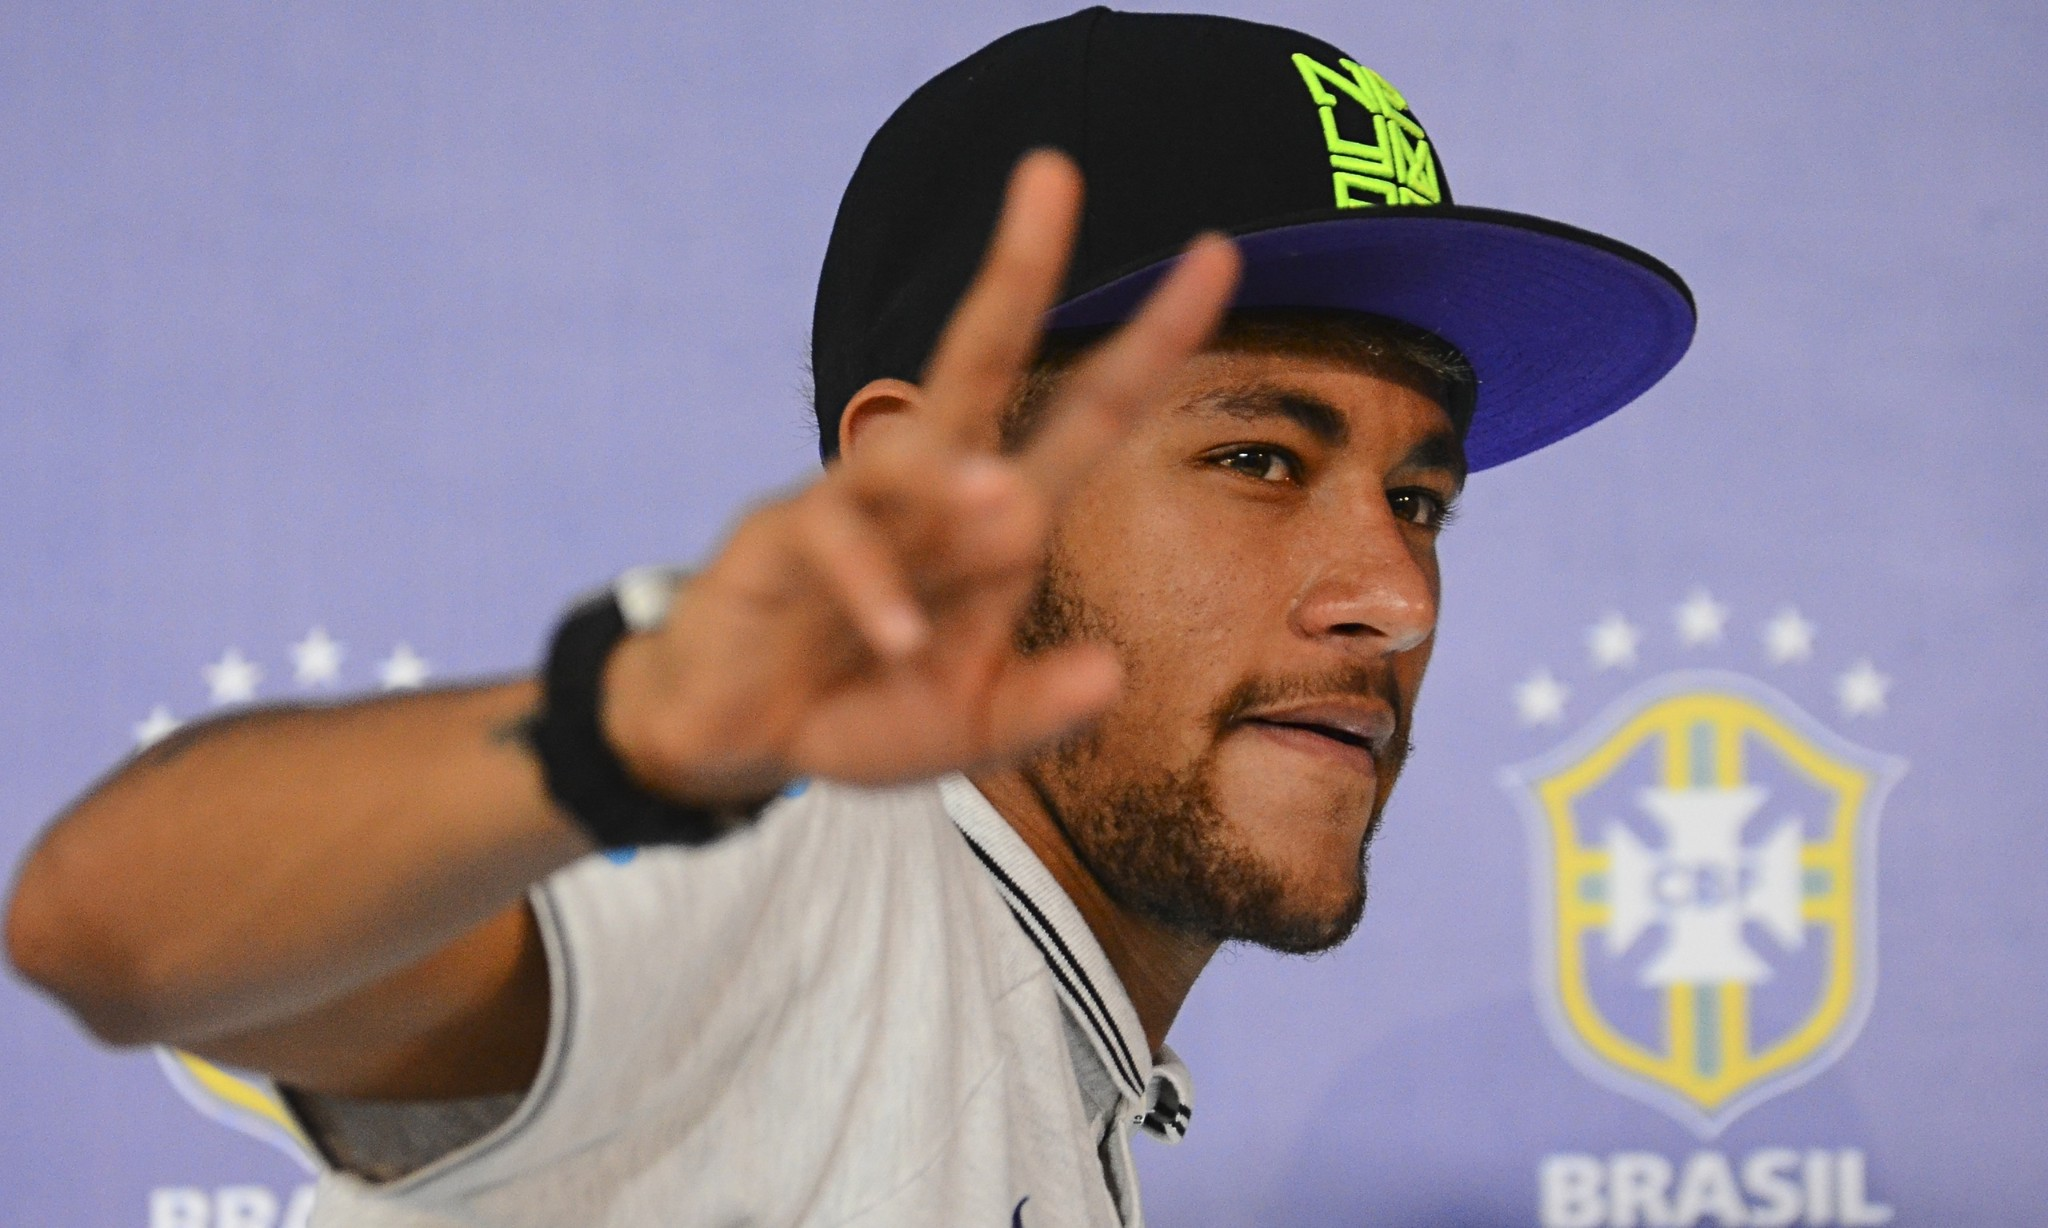 Neymar fit for Brazil's World Cup quarter-final with Colombia